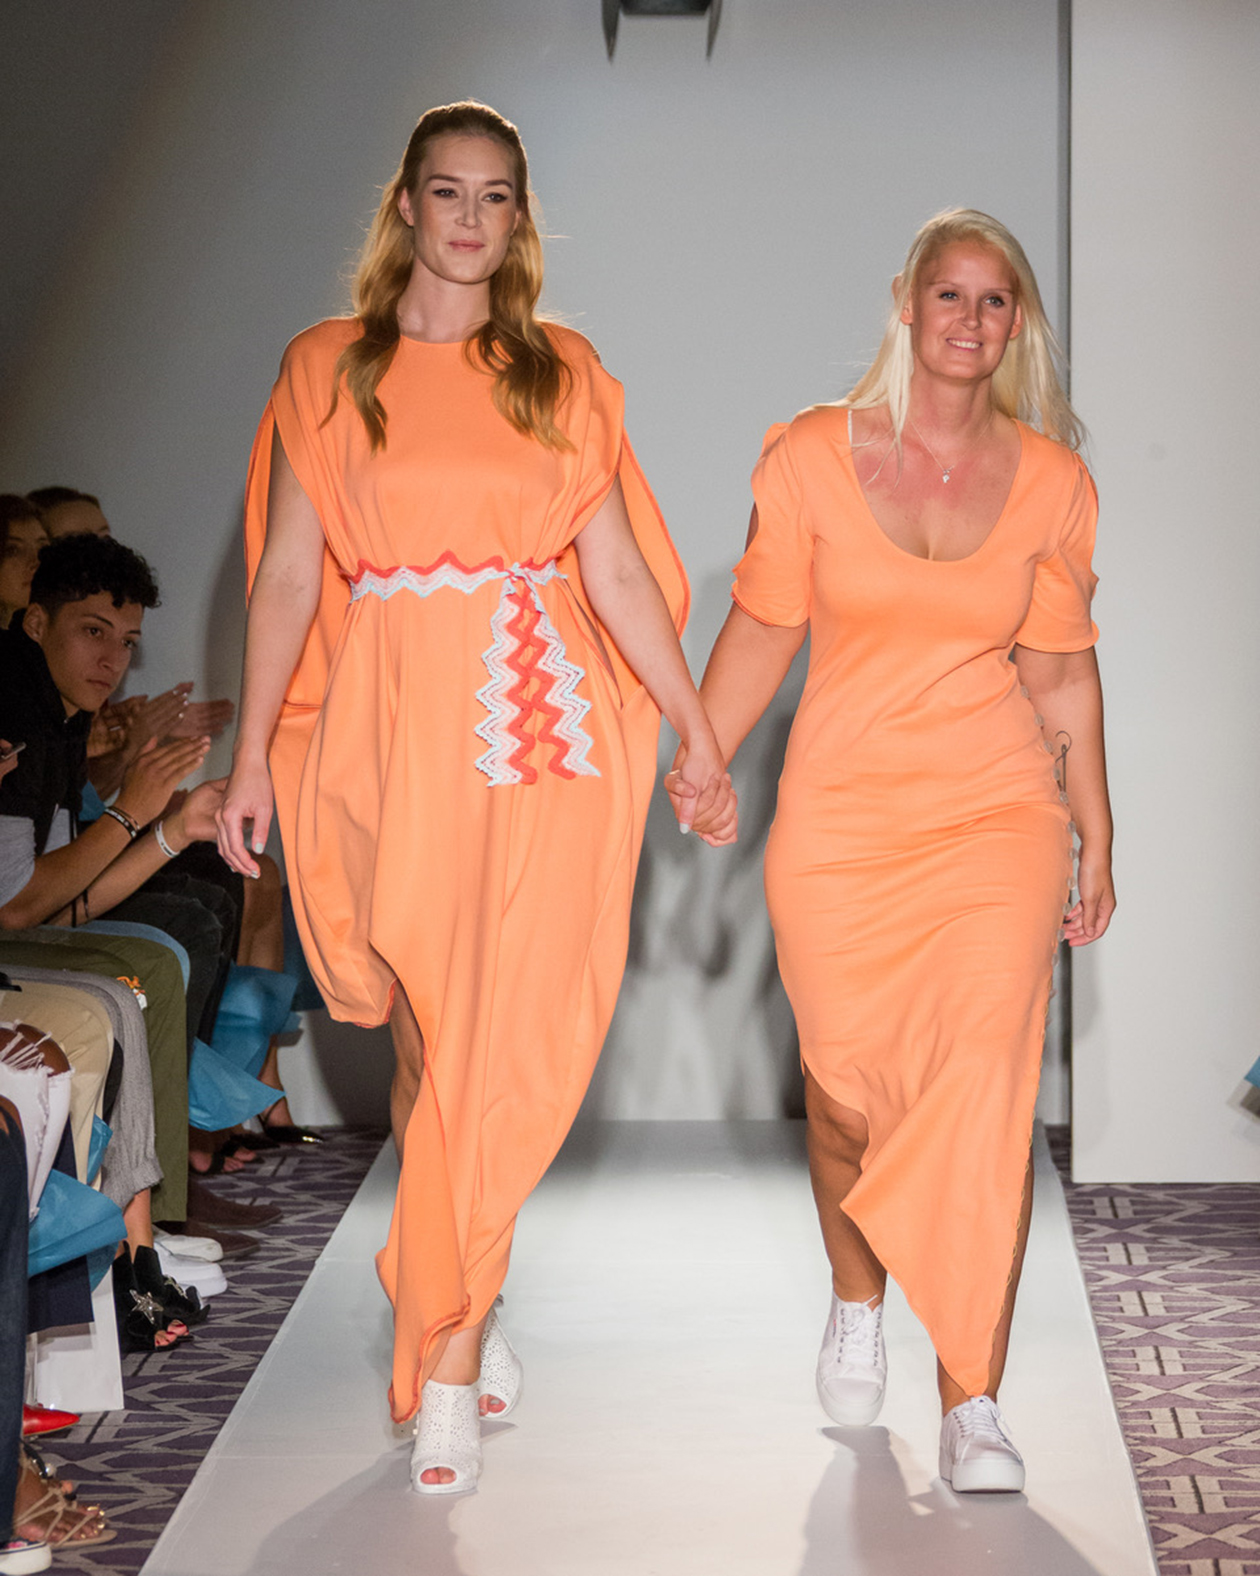 87bda321b Unikt, norsk design på London Fashion Week | FriCorp